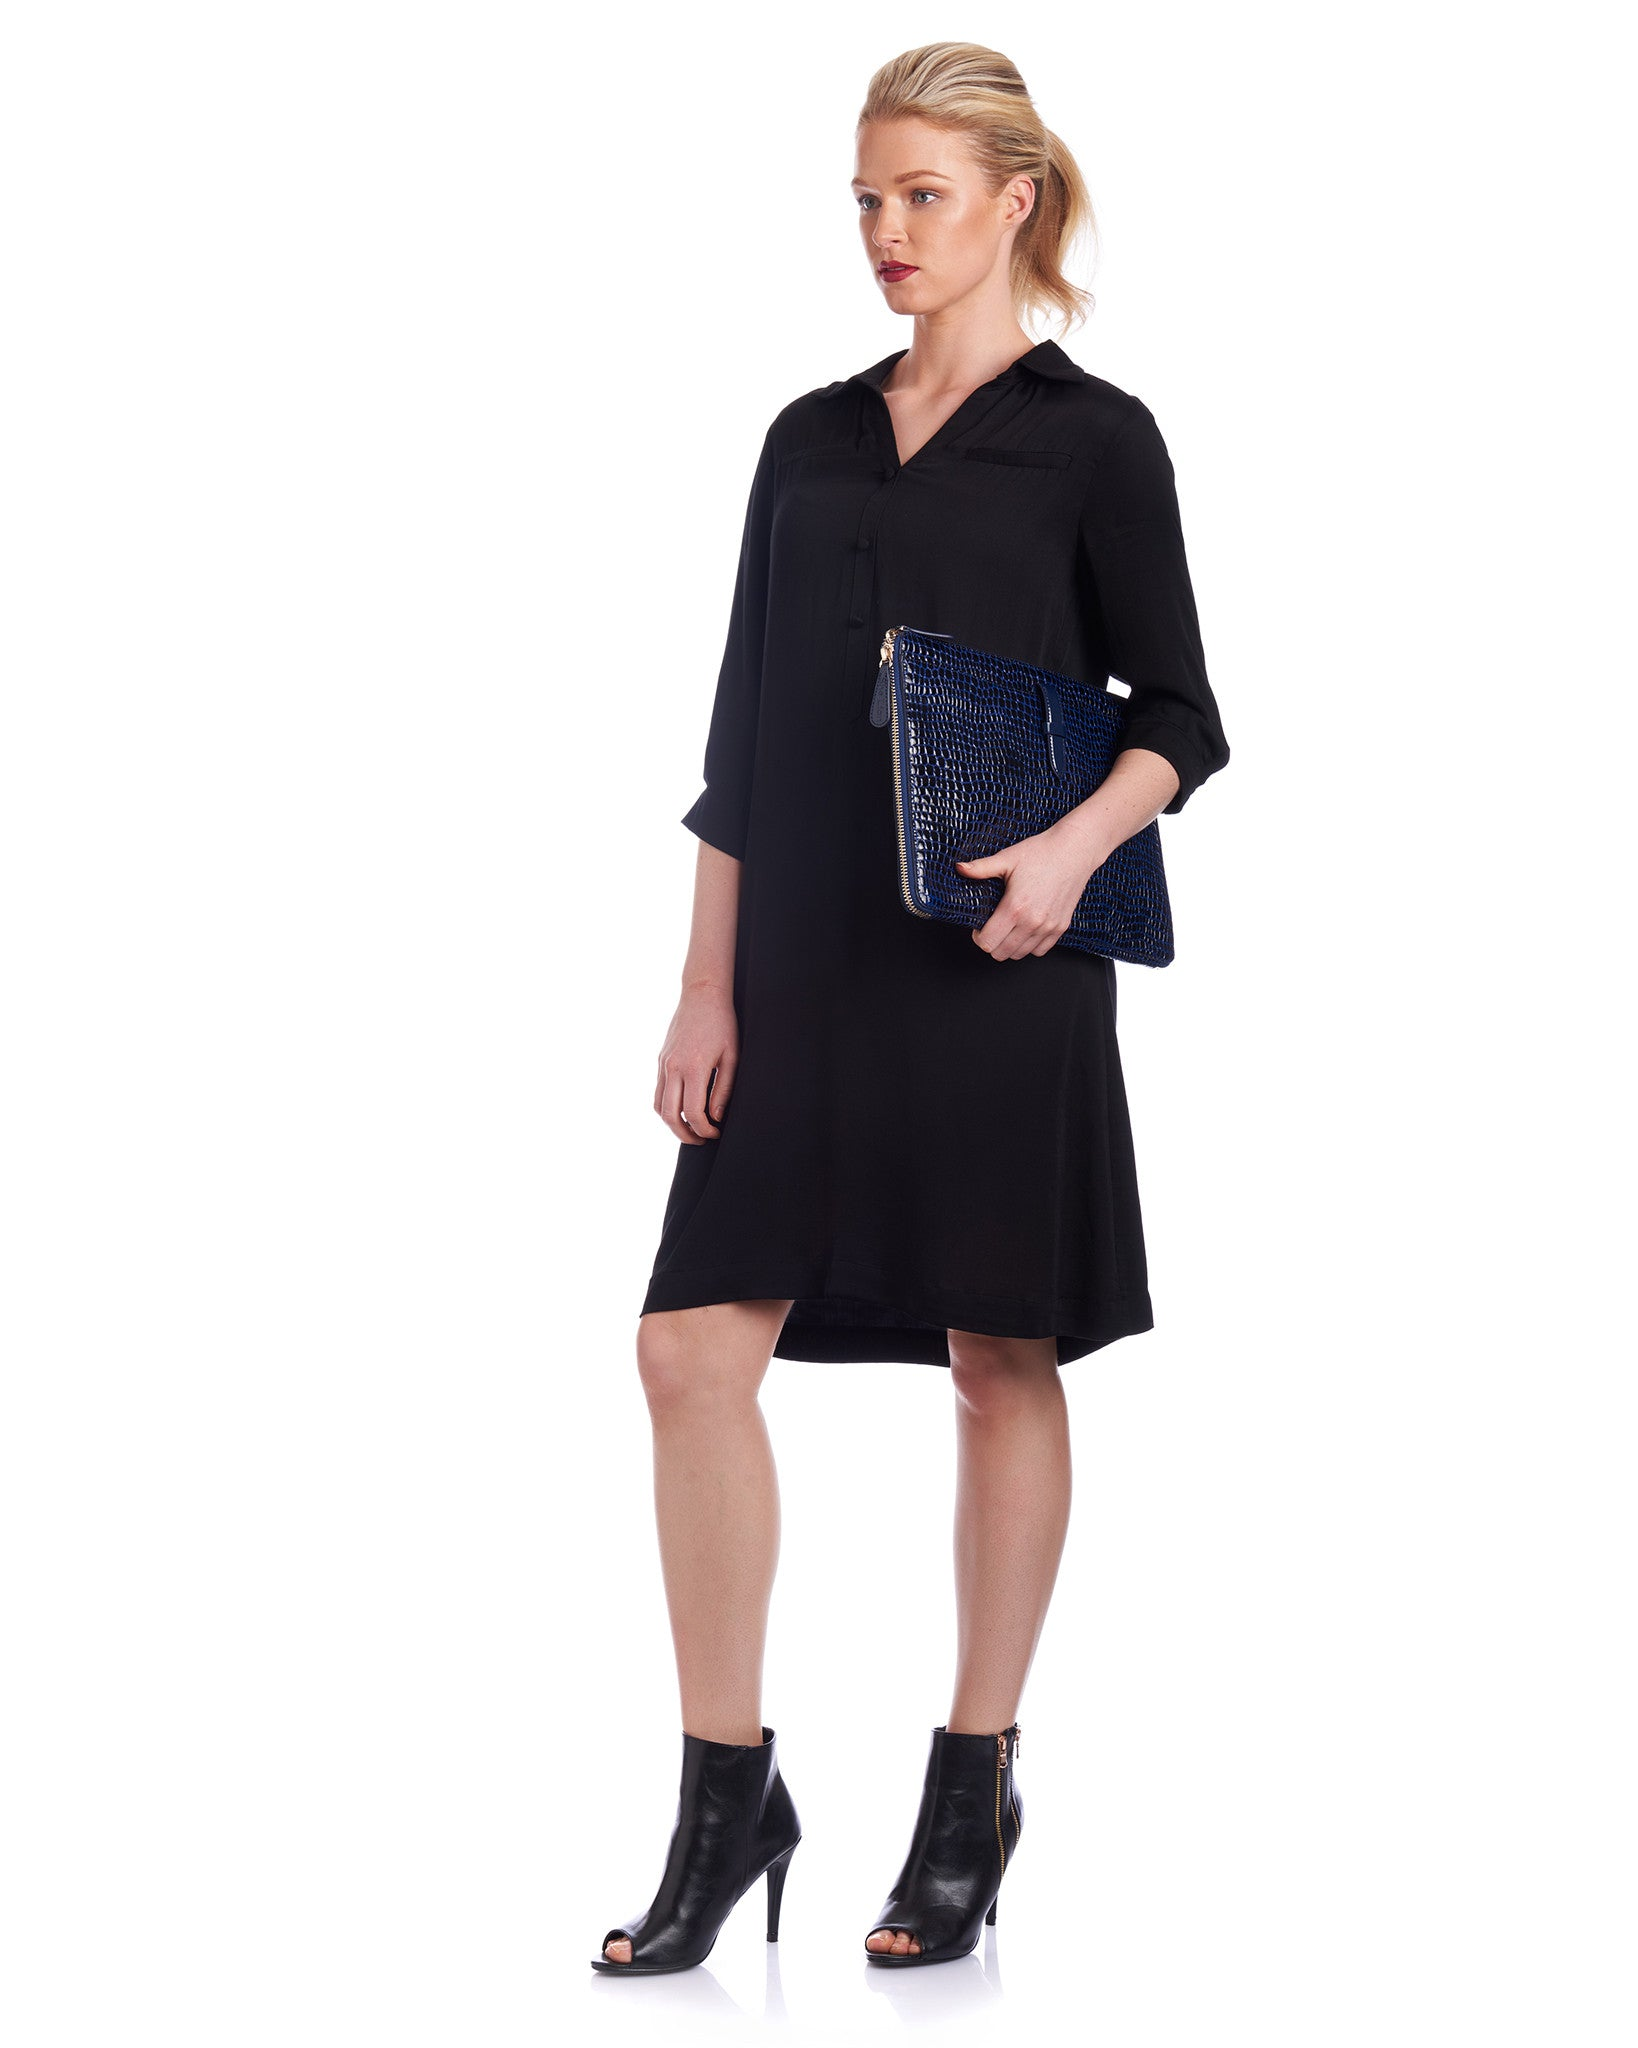 The Tahlo relaxed fit shirt dress in black is the perfect workwear